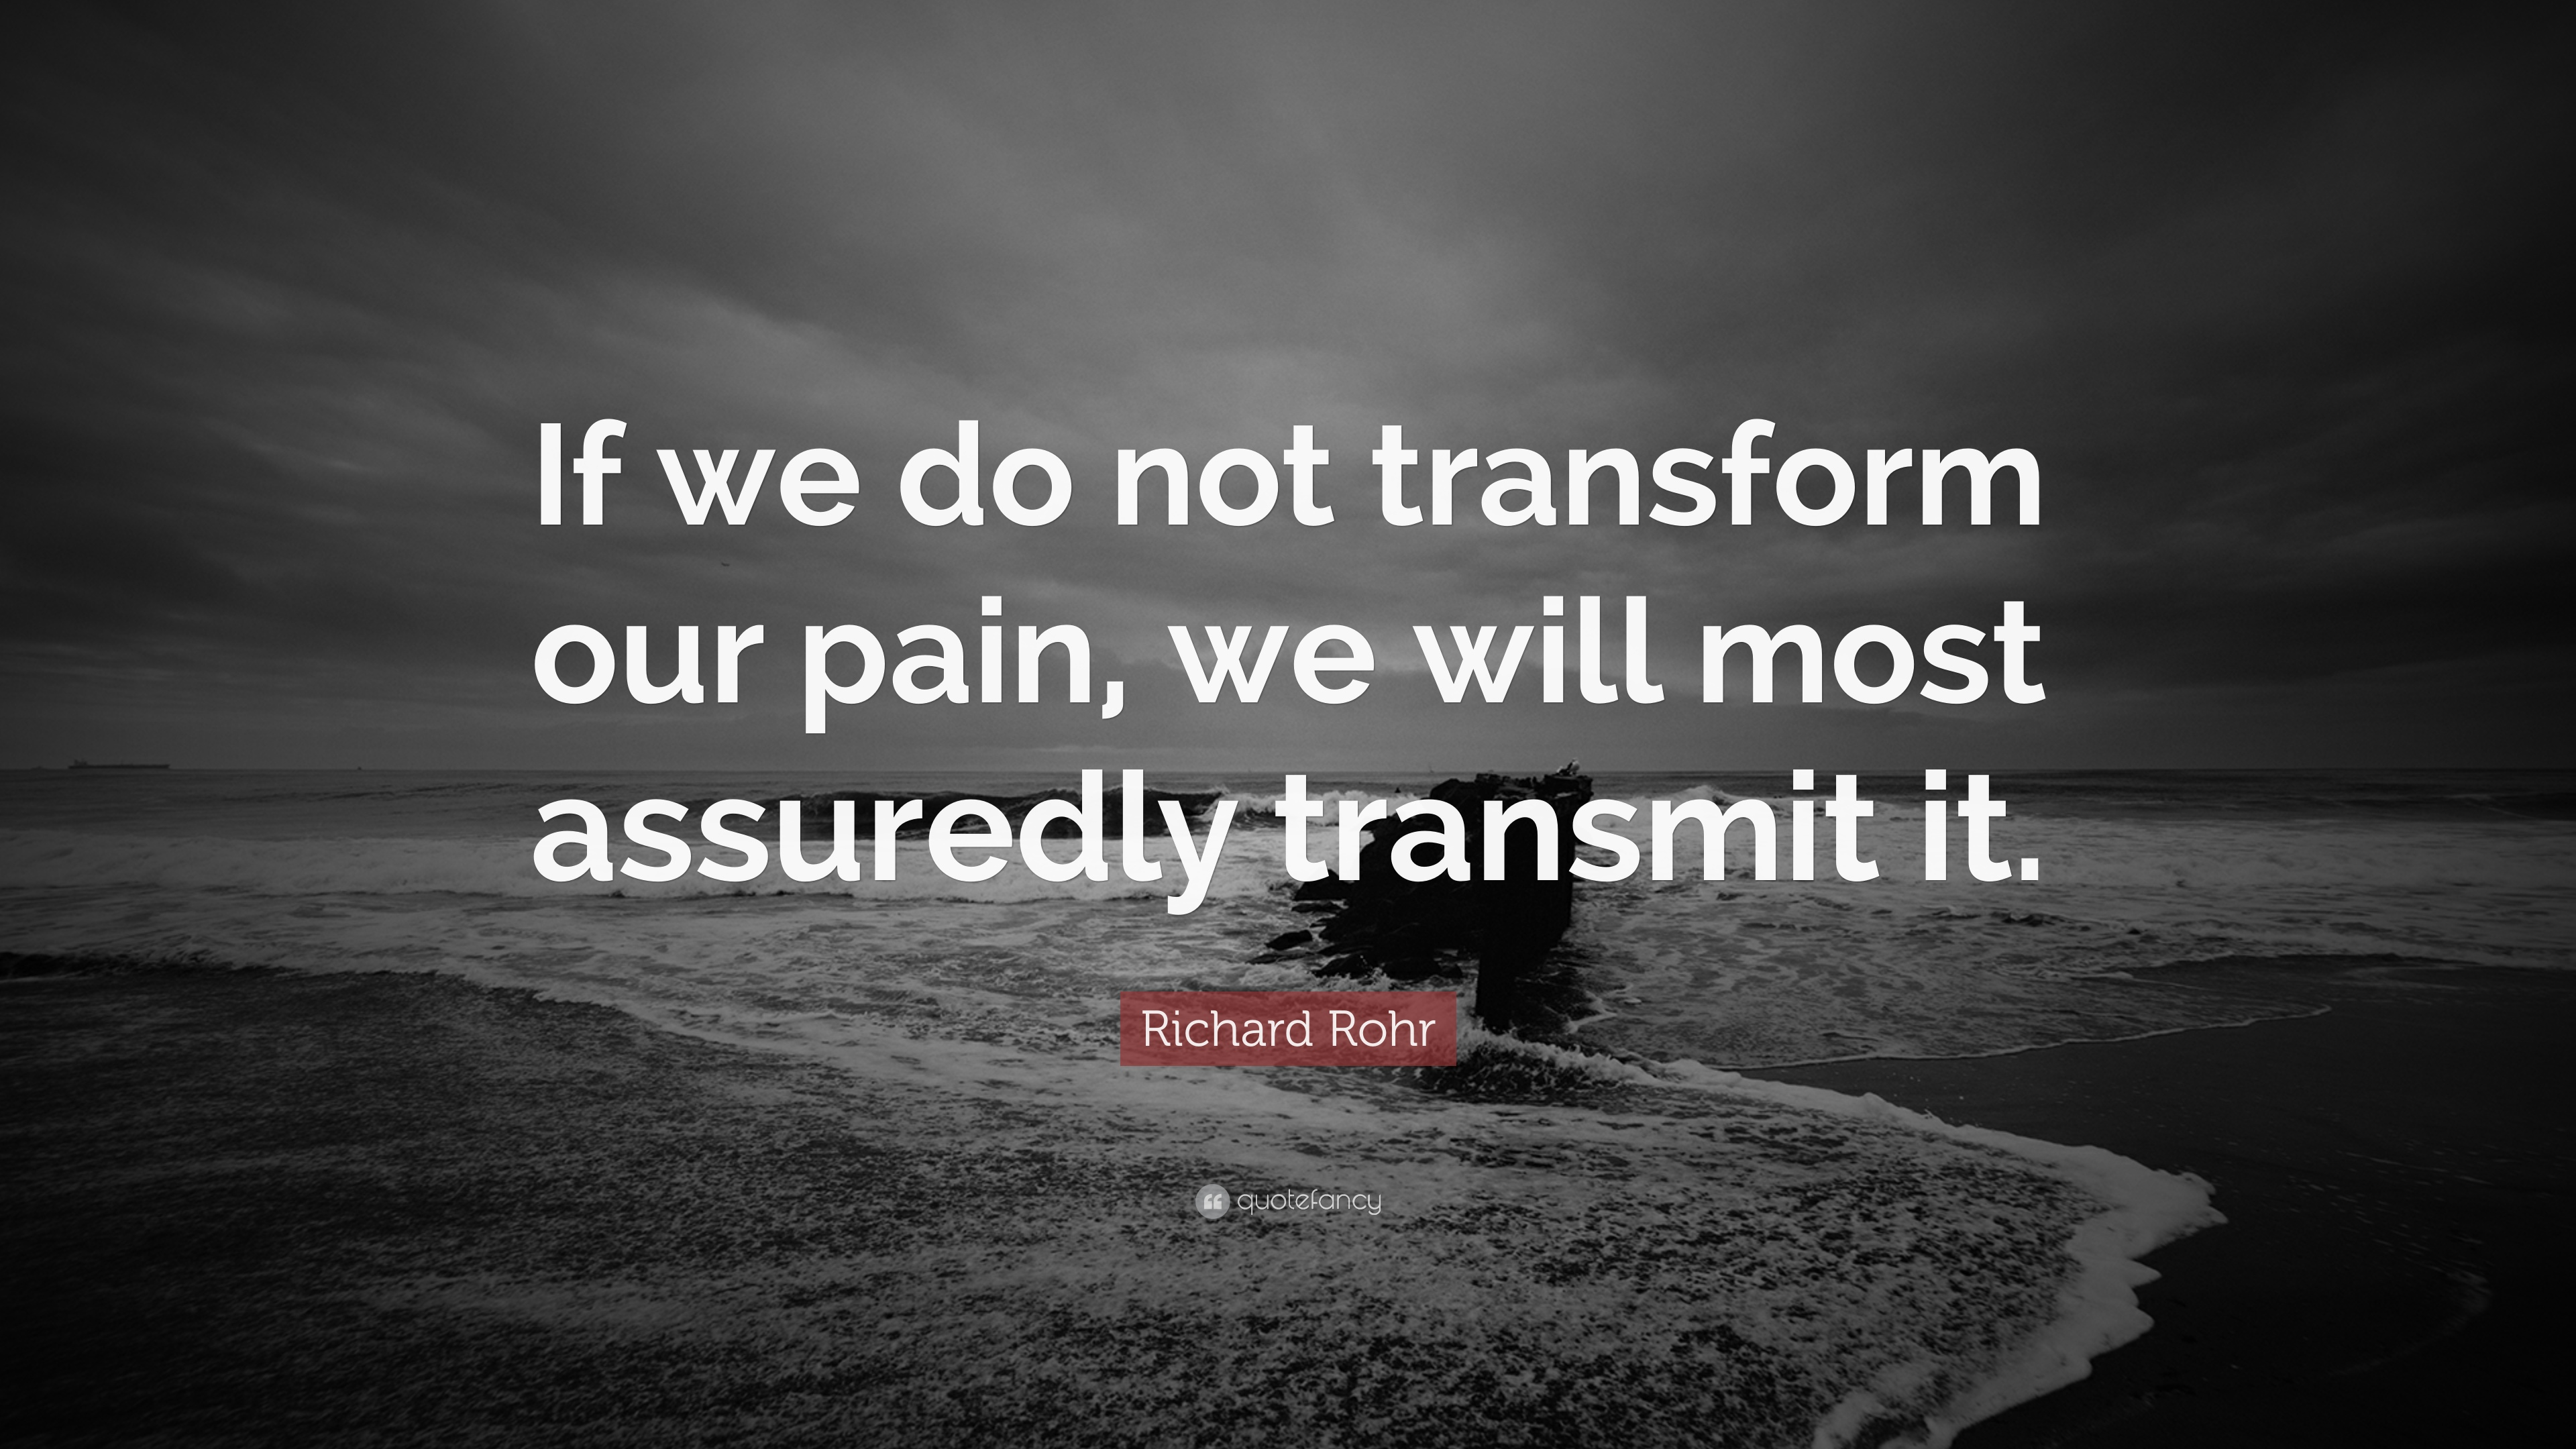 Richard Rohr Quotes   Richard Rohr Quote If We Do Not Transform Our Pain We Will Most